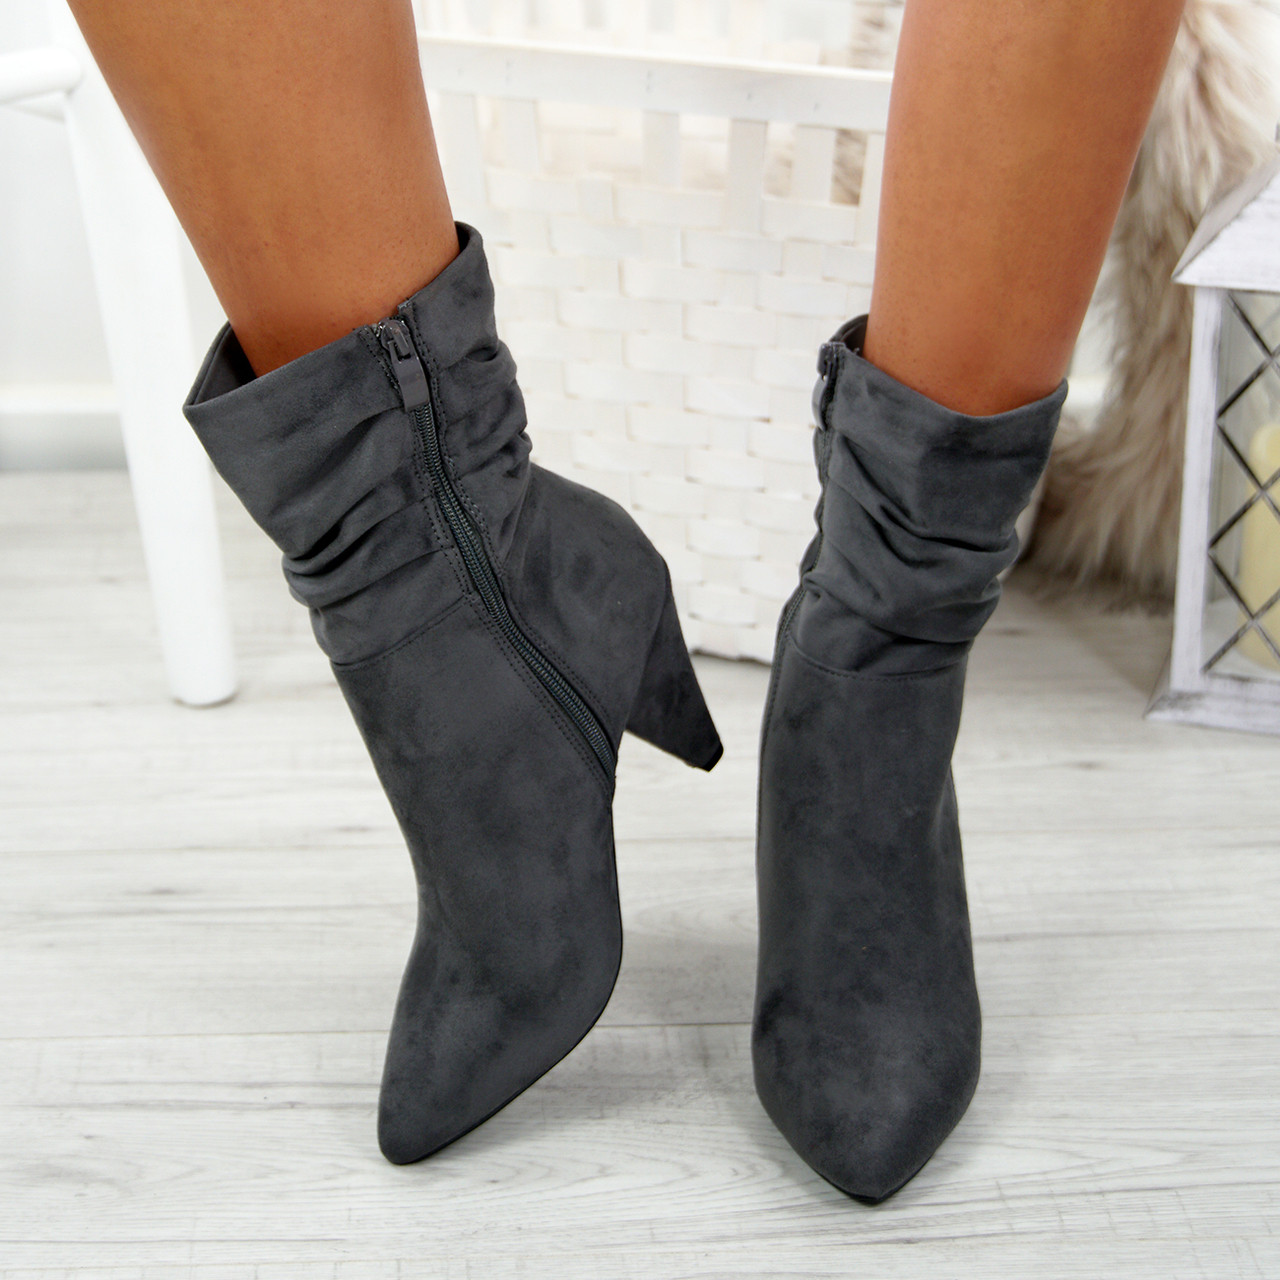 d9905db1aca Dole Grey Cone Heel Ankle Boots